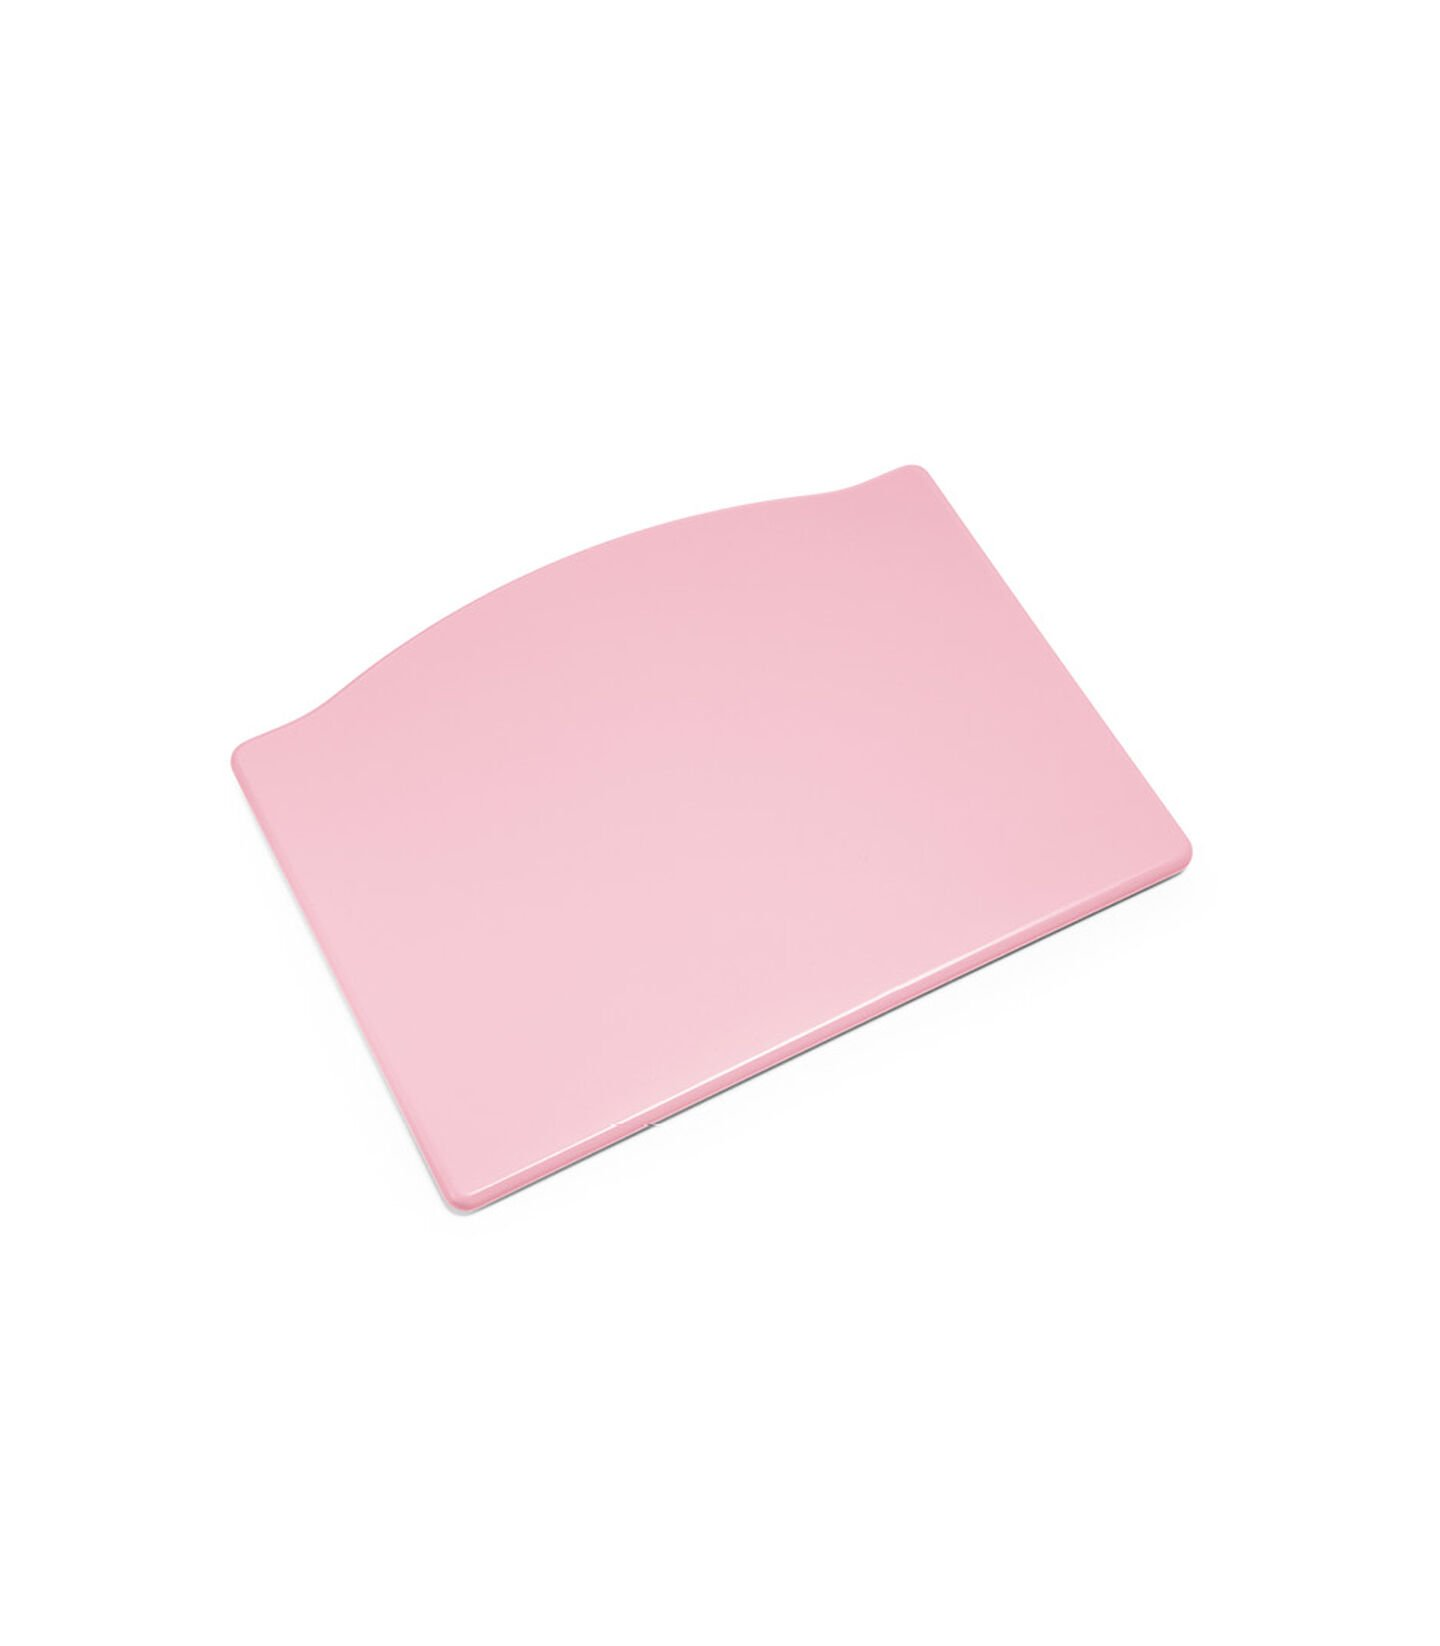 Tripp Trapp® Footplate Soft Pink, Soft Pink, mainview view 2